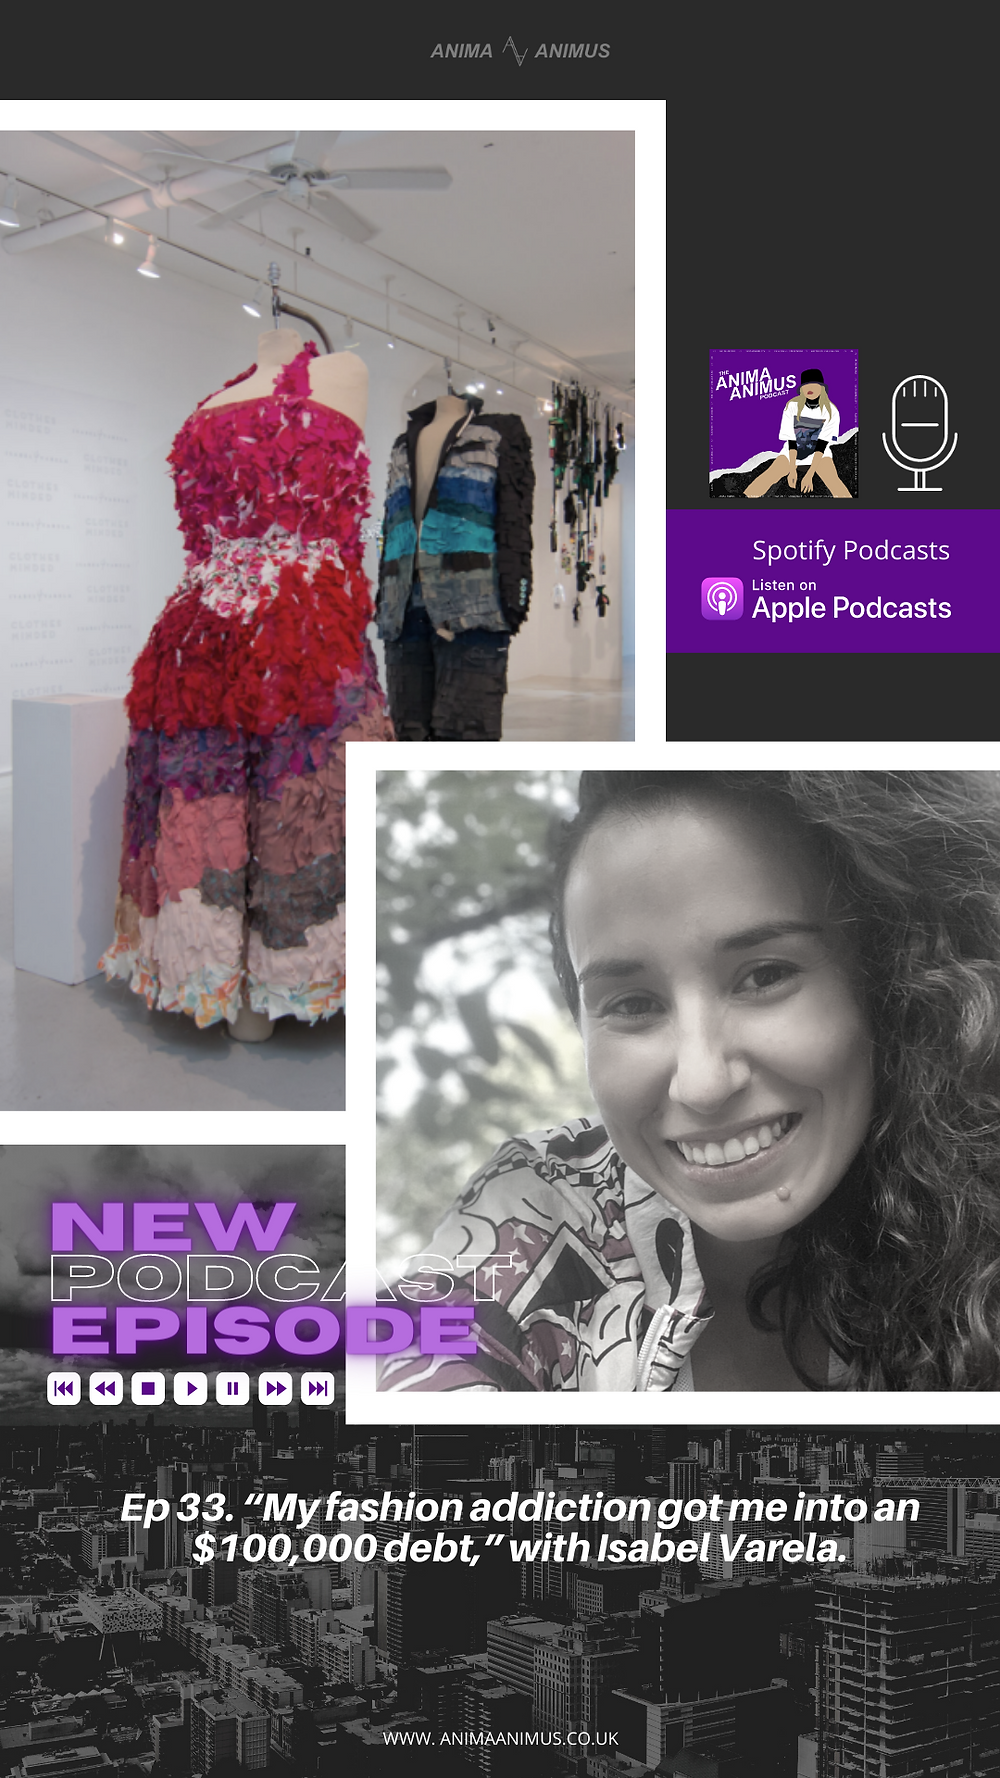 A sustainable fashion podcast by Chelsea from The ANIMA ANIMUS Podcast, featuring Isabel Varela who is a sustainable fashion advocate, sustainability consultant and life coach.